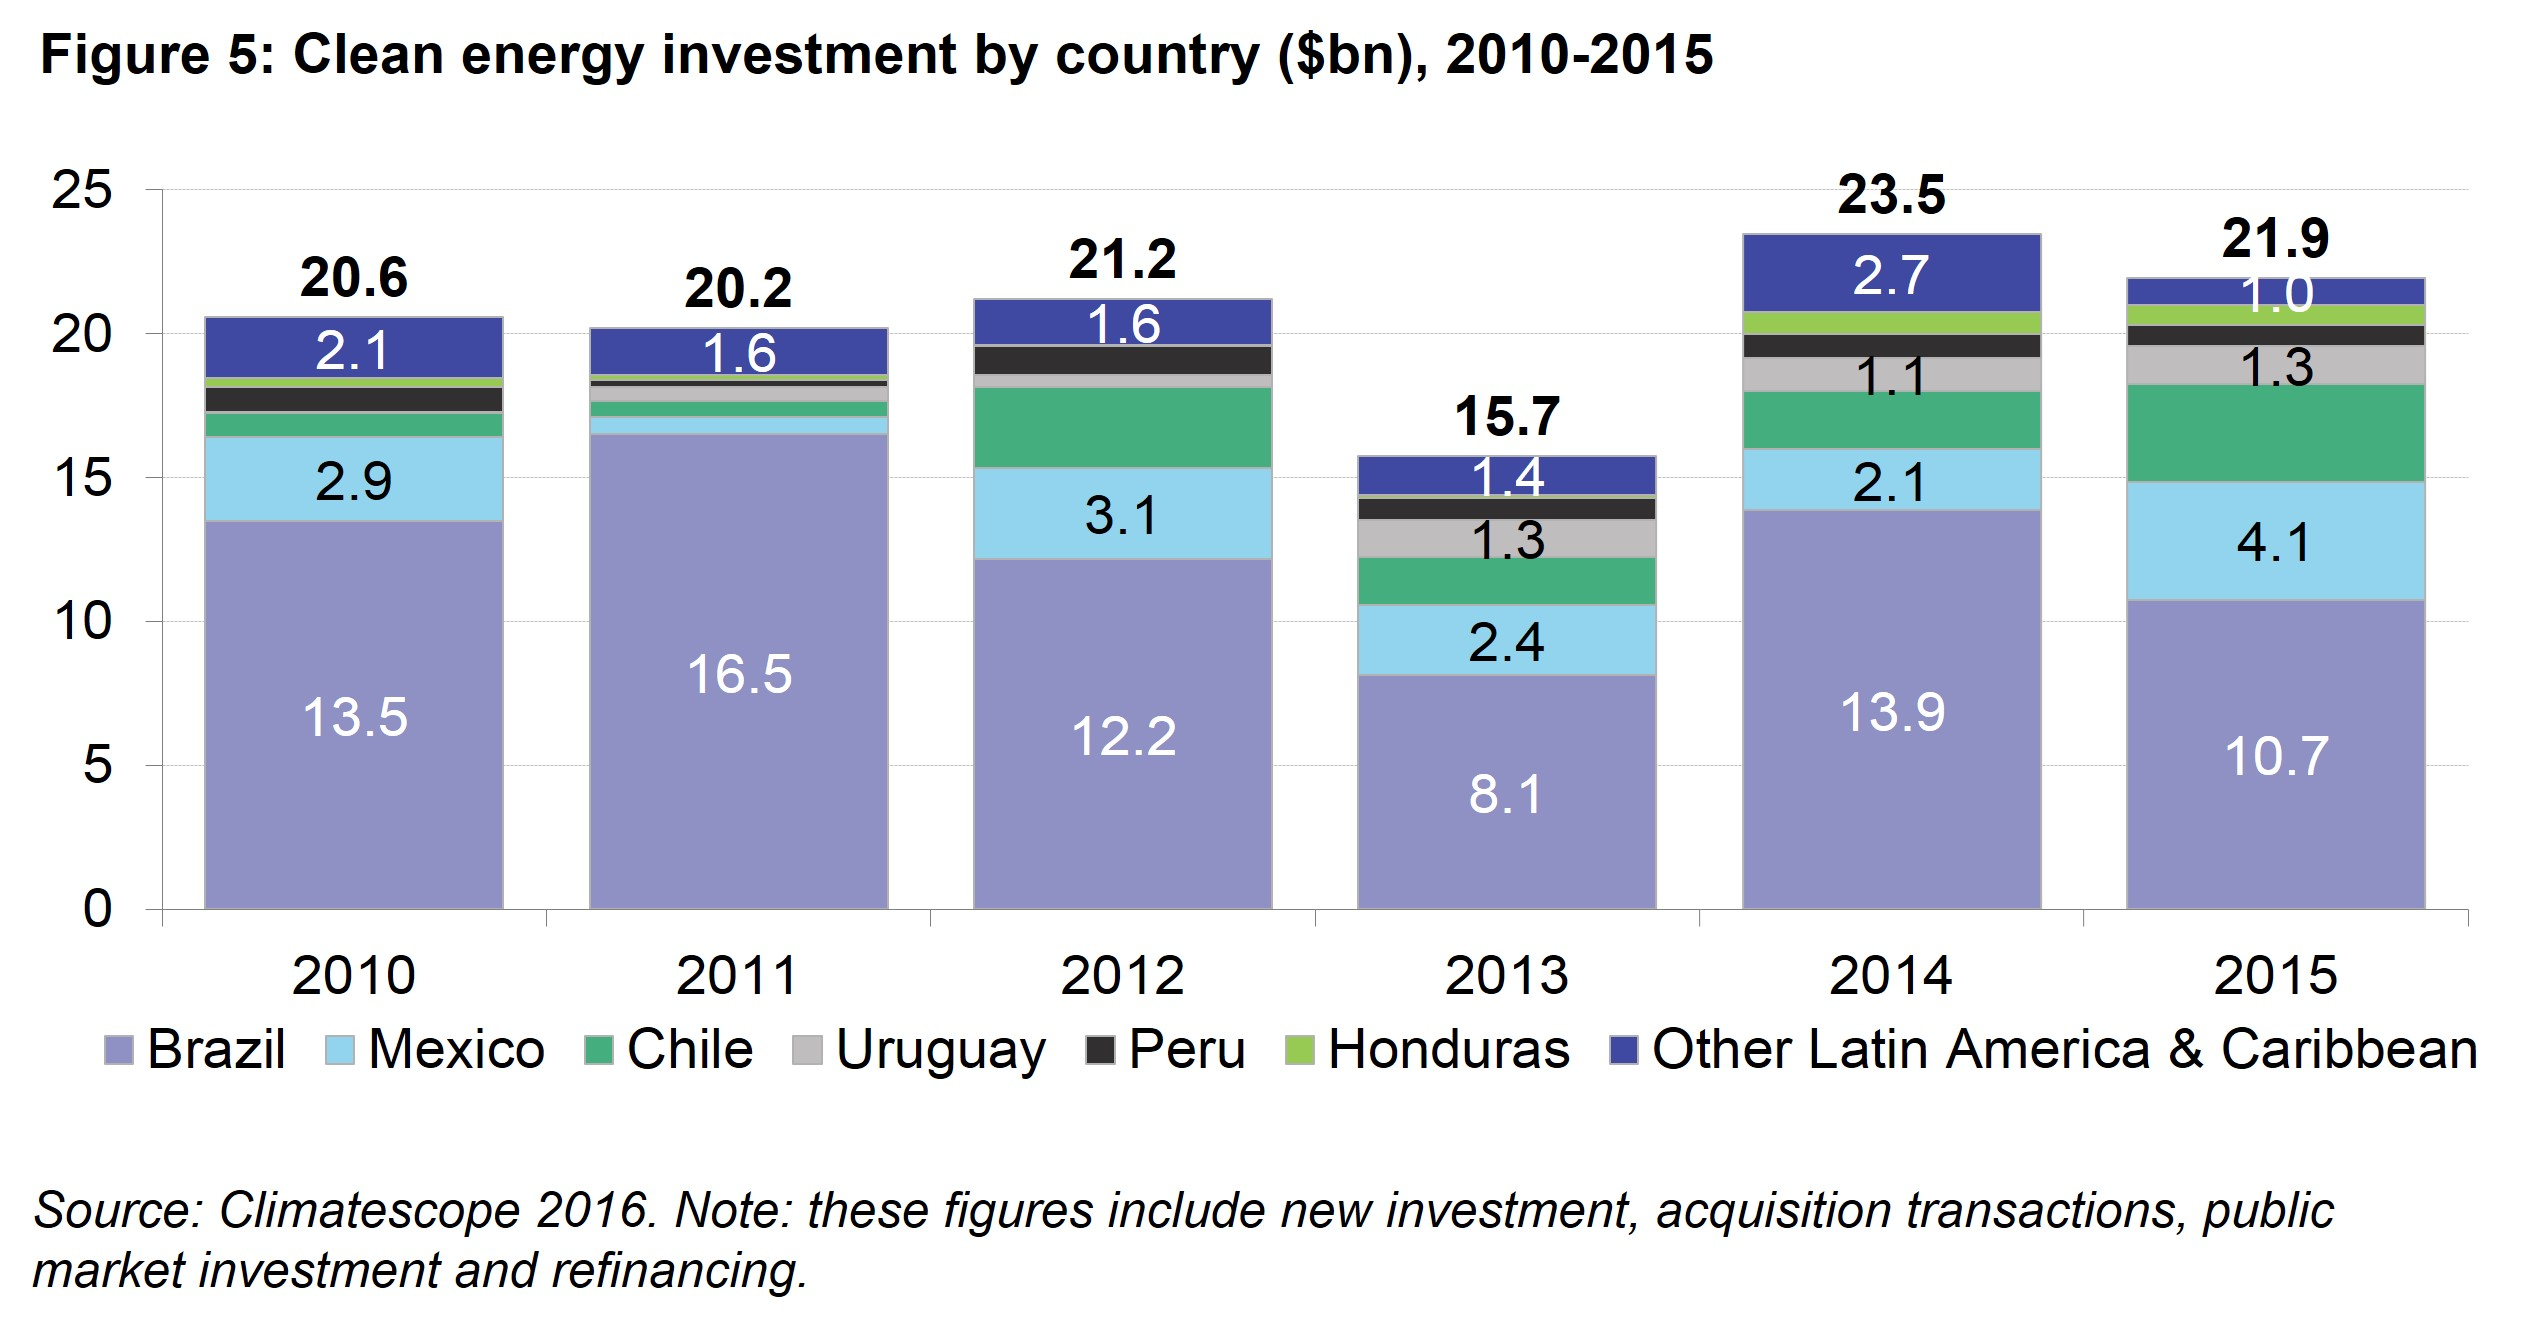 LAC Fig 5 - Clean energy investment by country, 2010 - 2015